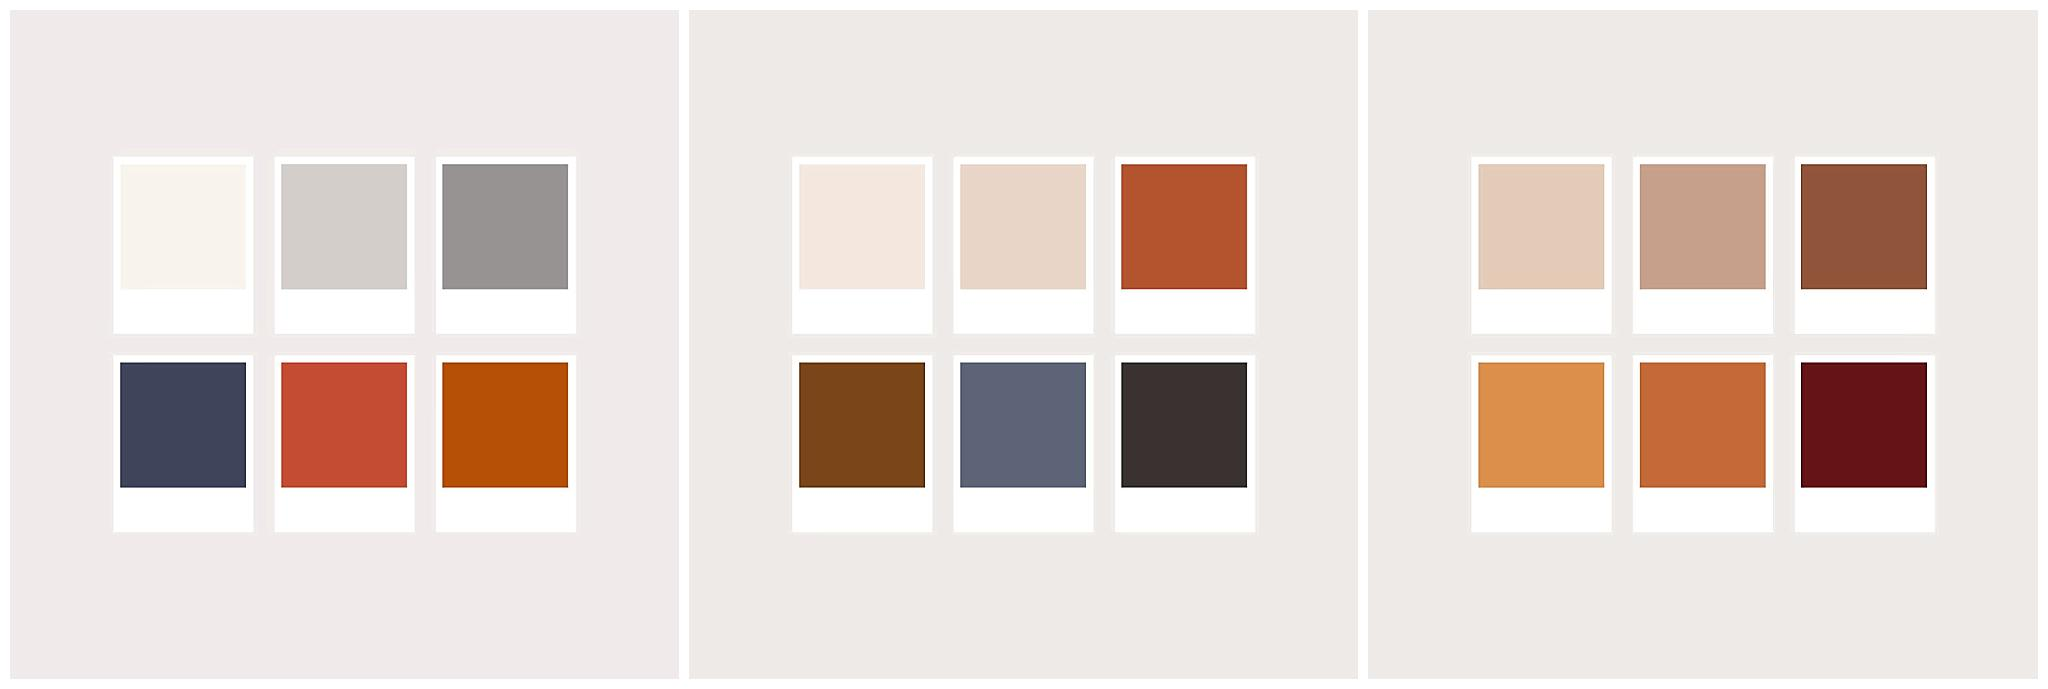 three different color palettes for family photos